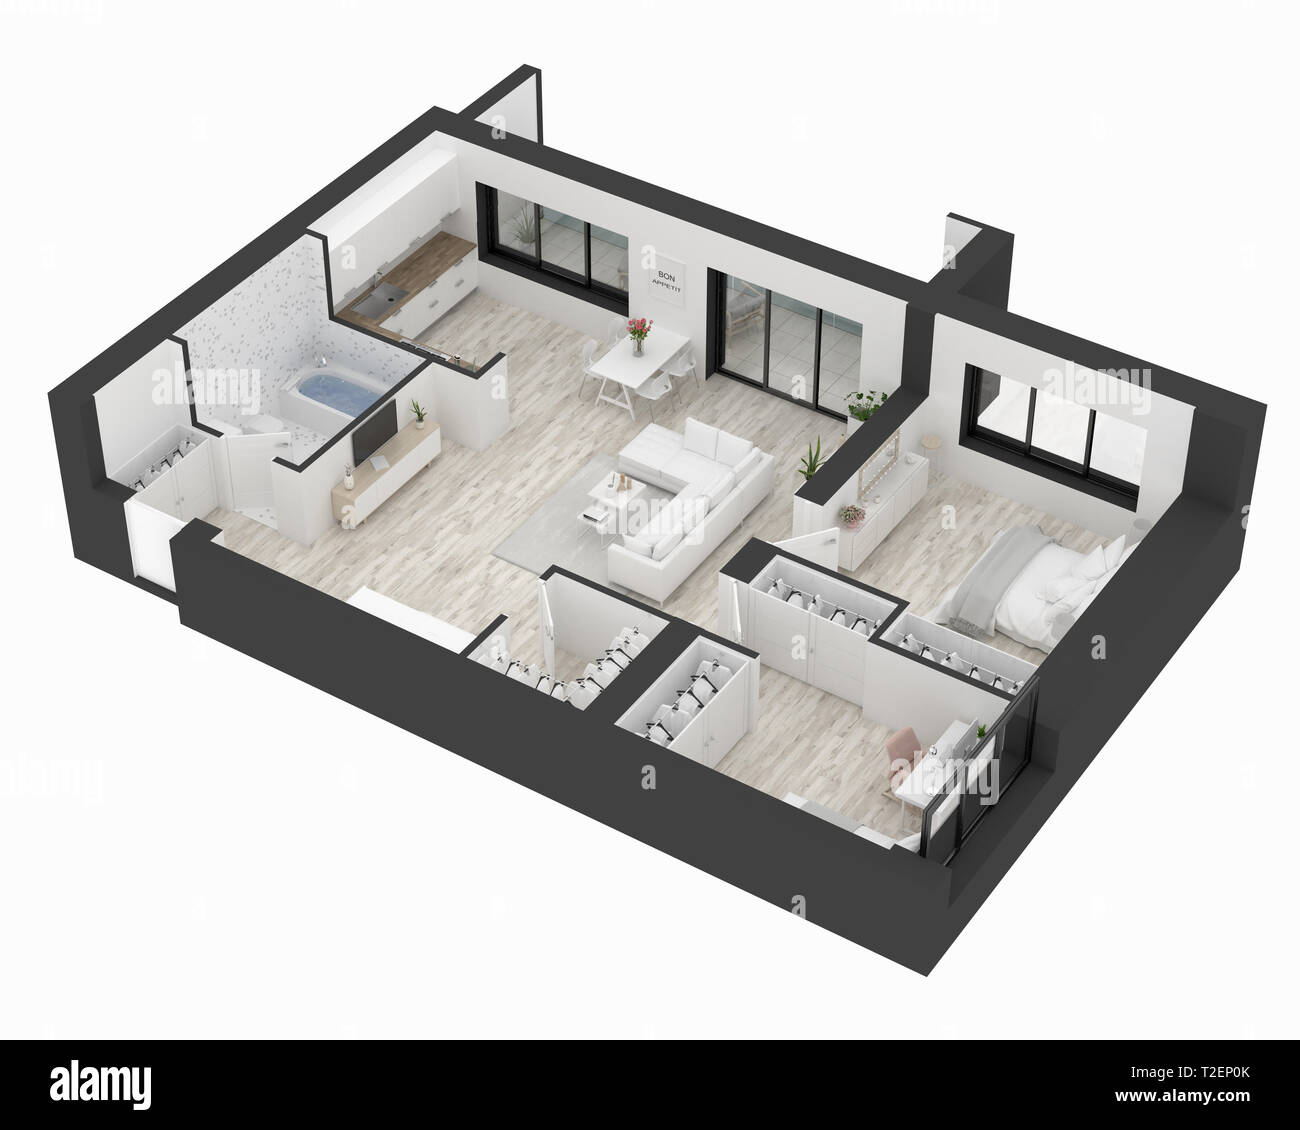 Floor Plan Of A Home Top View 3d Illustration Open Concept Living Apartment Layout Stock Photo Alamy